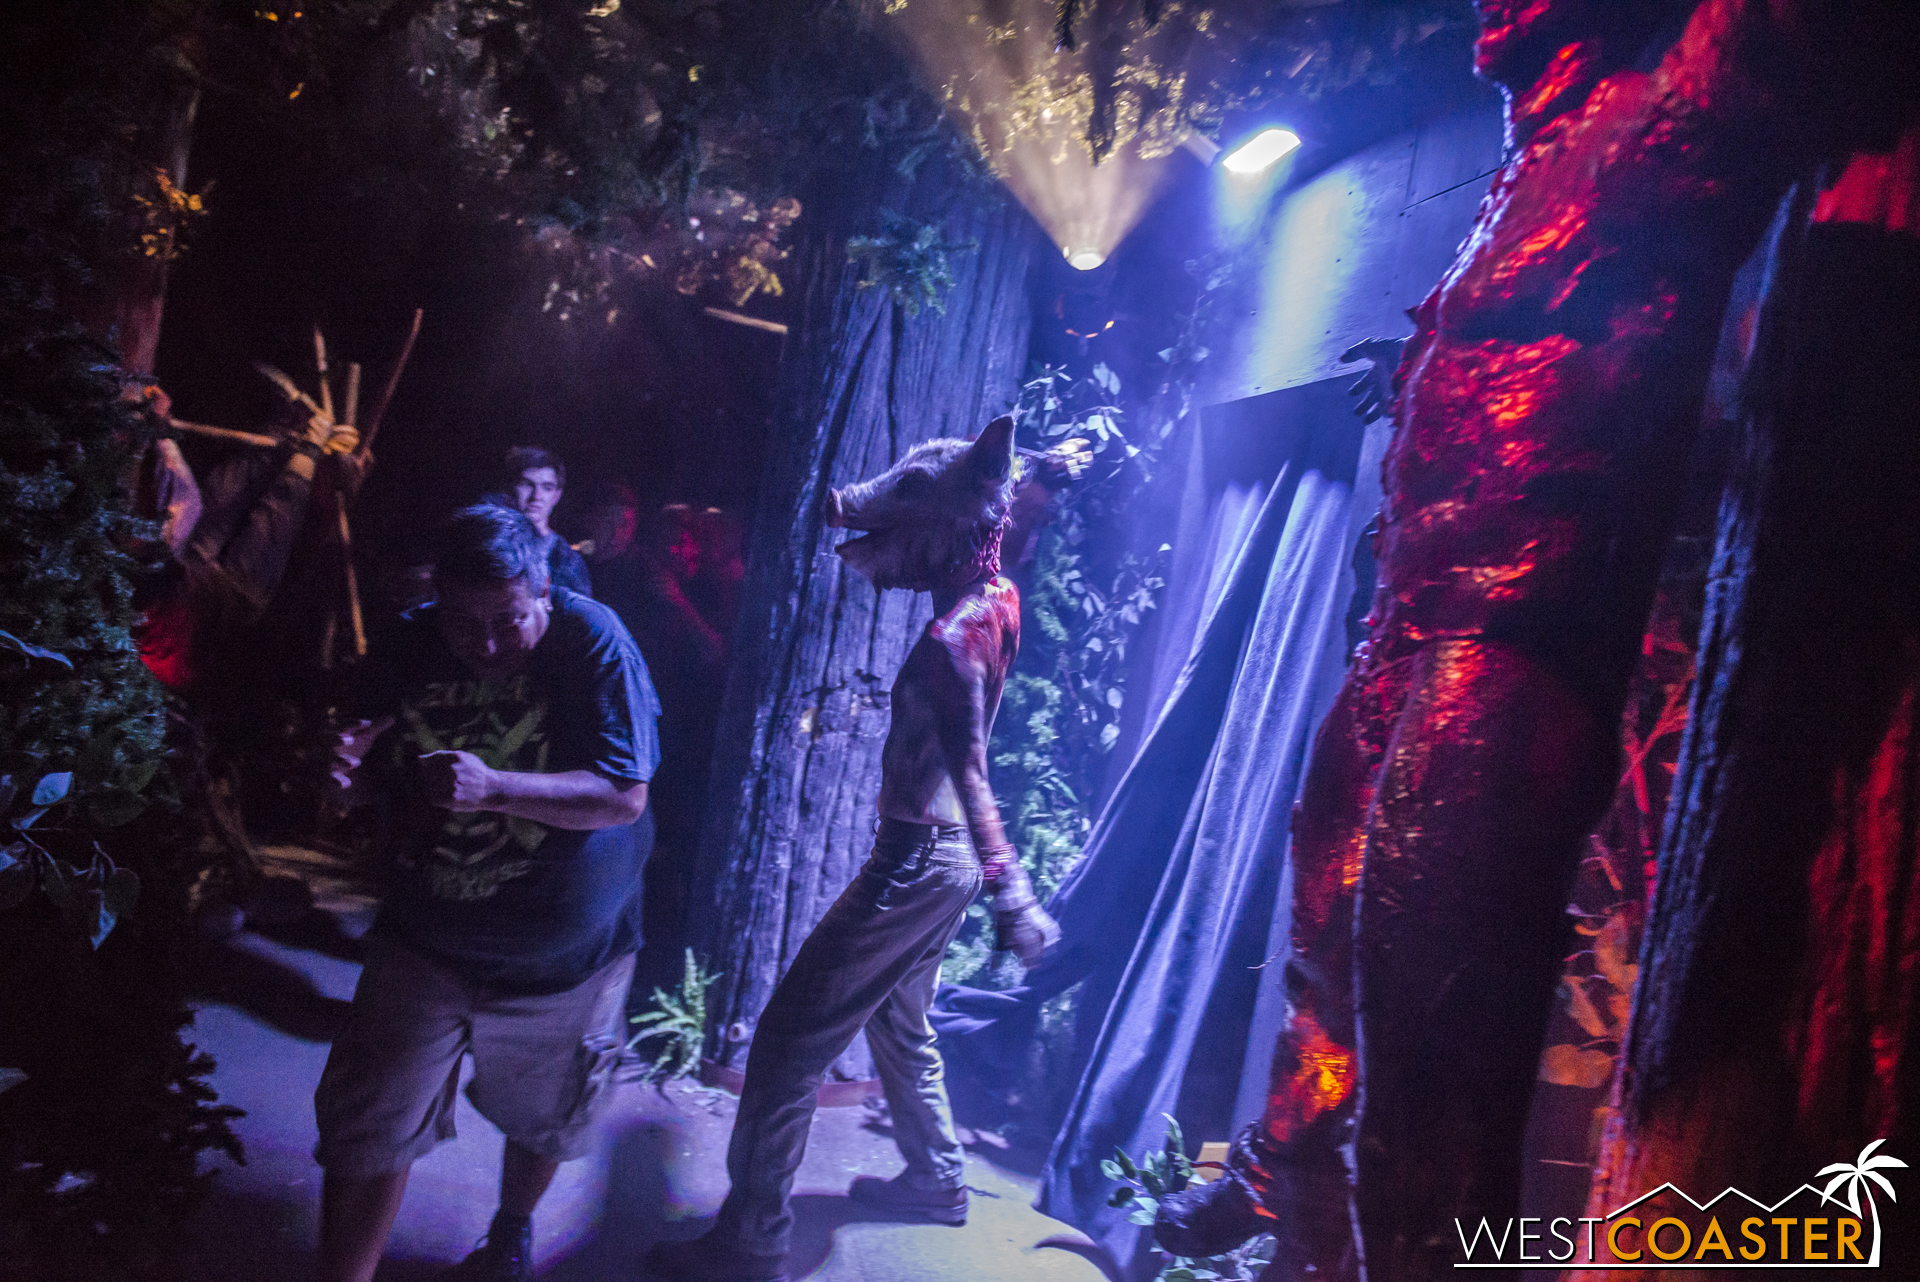 Proof that Horror Nights' signature scare tactic certainly can be effective, at least at times.